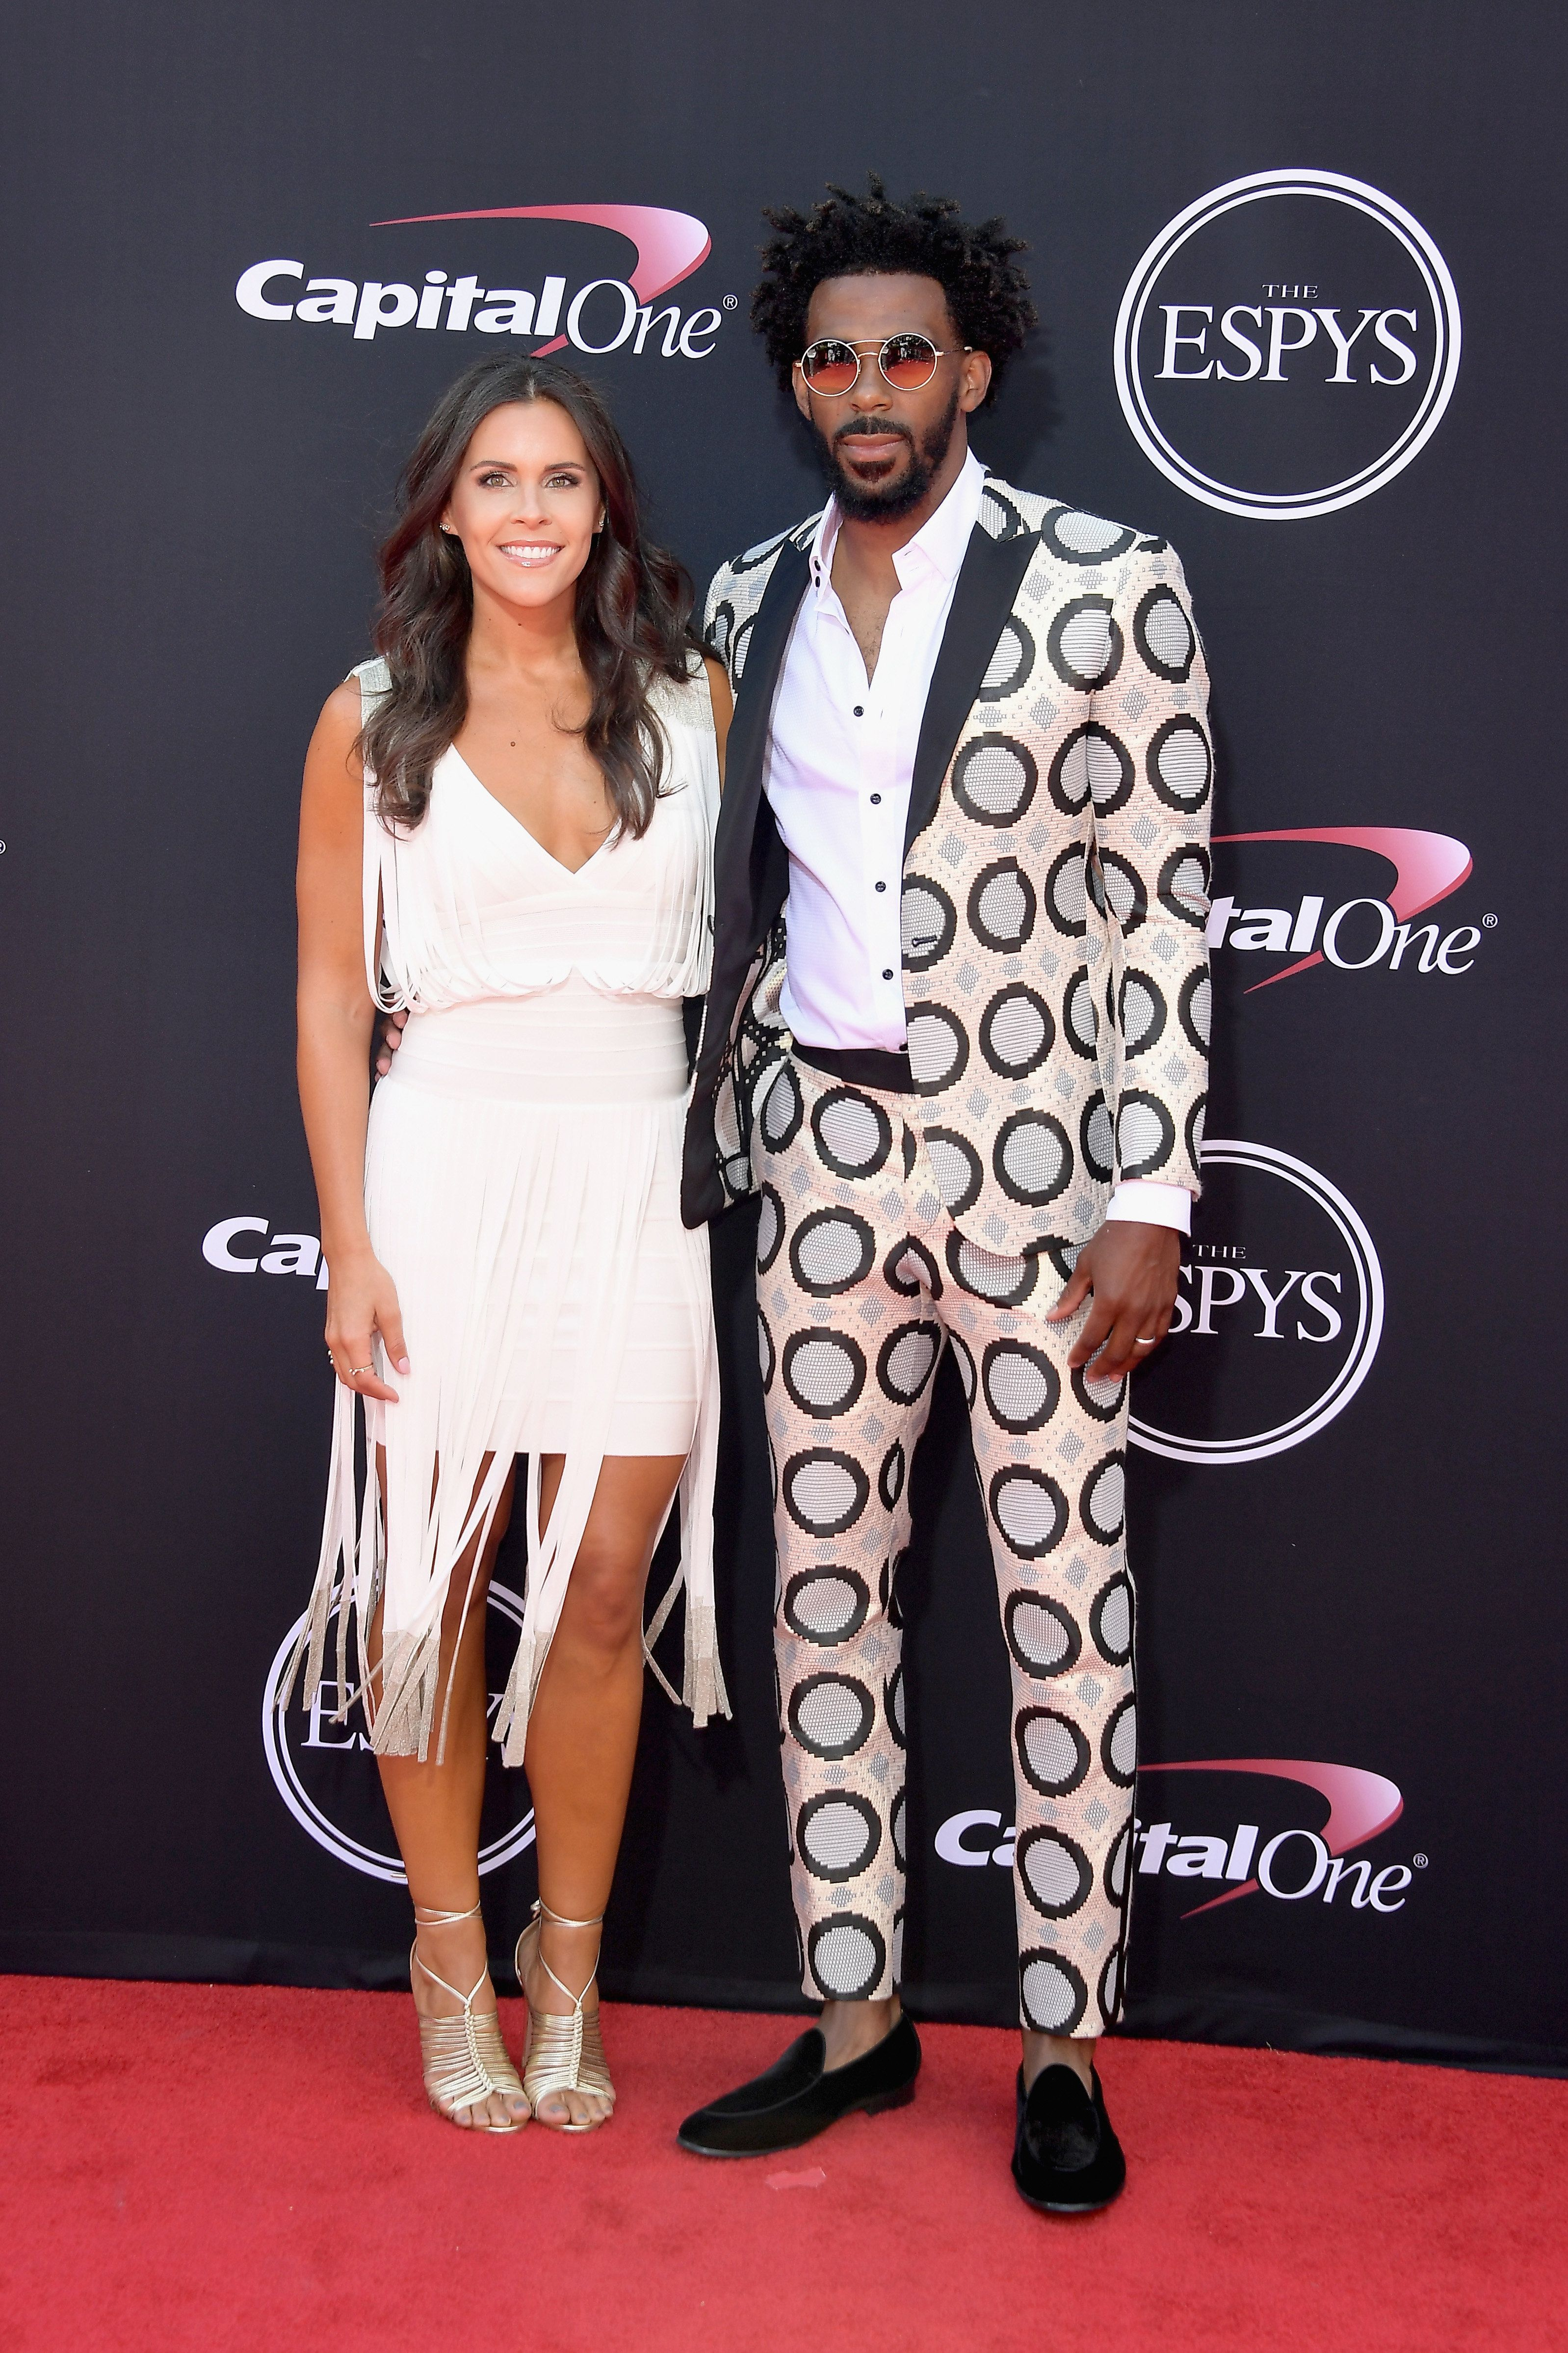 Mike Conley Jr. and Mary Conley attend The 2017 ESPYS at Microsoft Theater on July 12, 2017 in Los Angeles, California